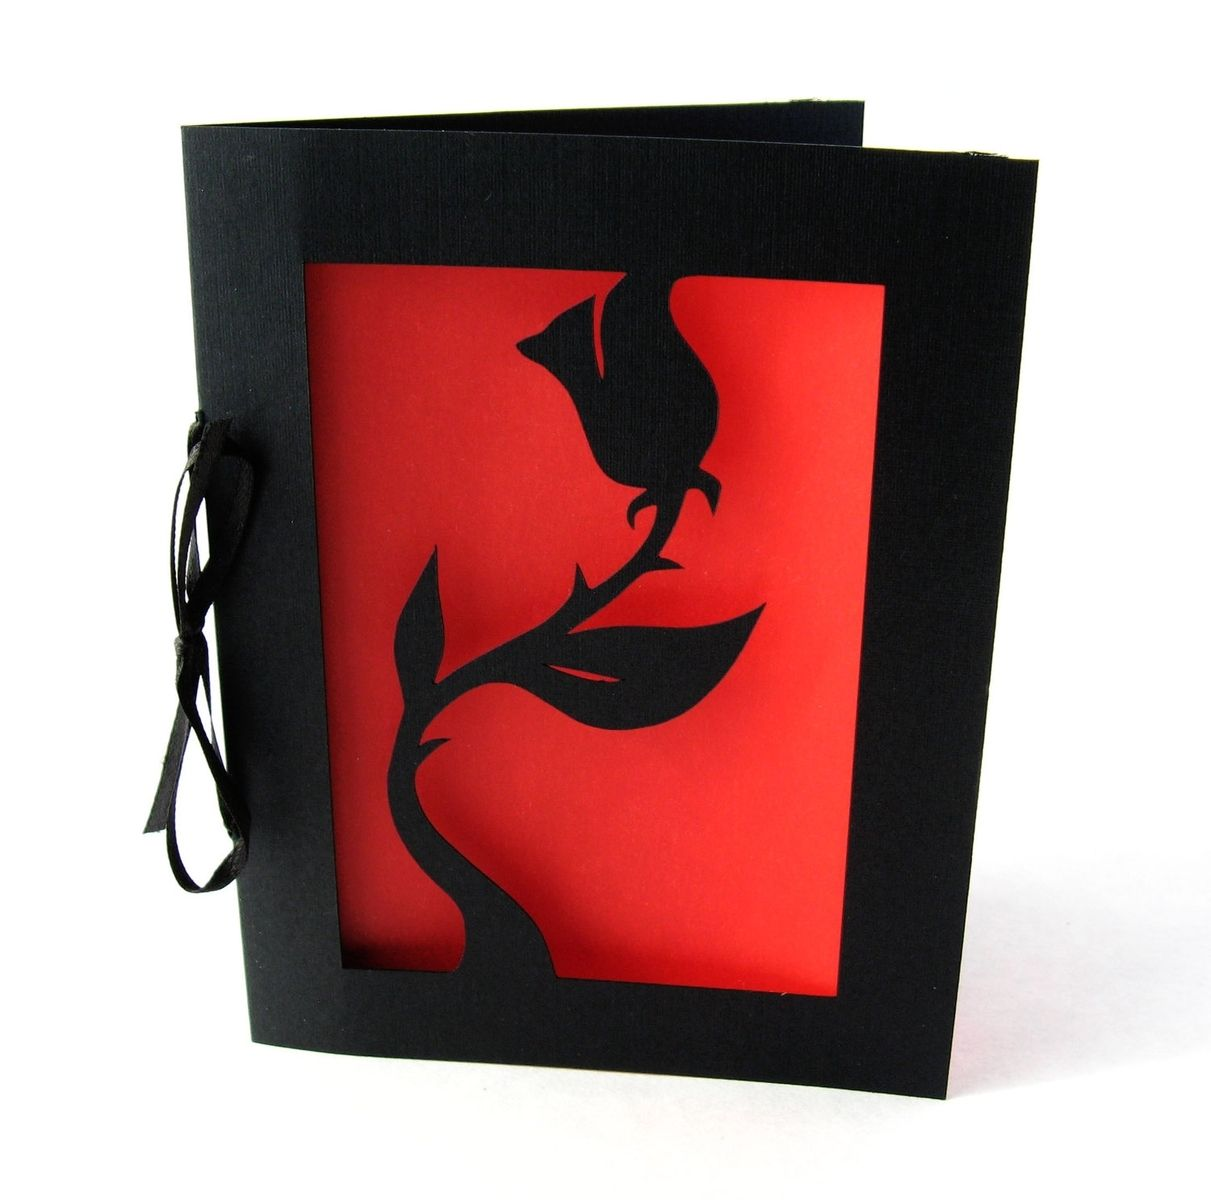 Asian Inspired Bedroom Furniture Buy A Hand Made Black Rose Valentine Cut Paper Silhouette